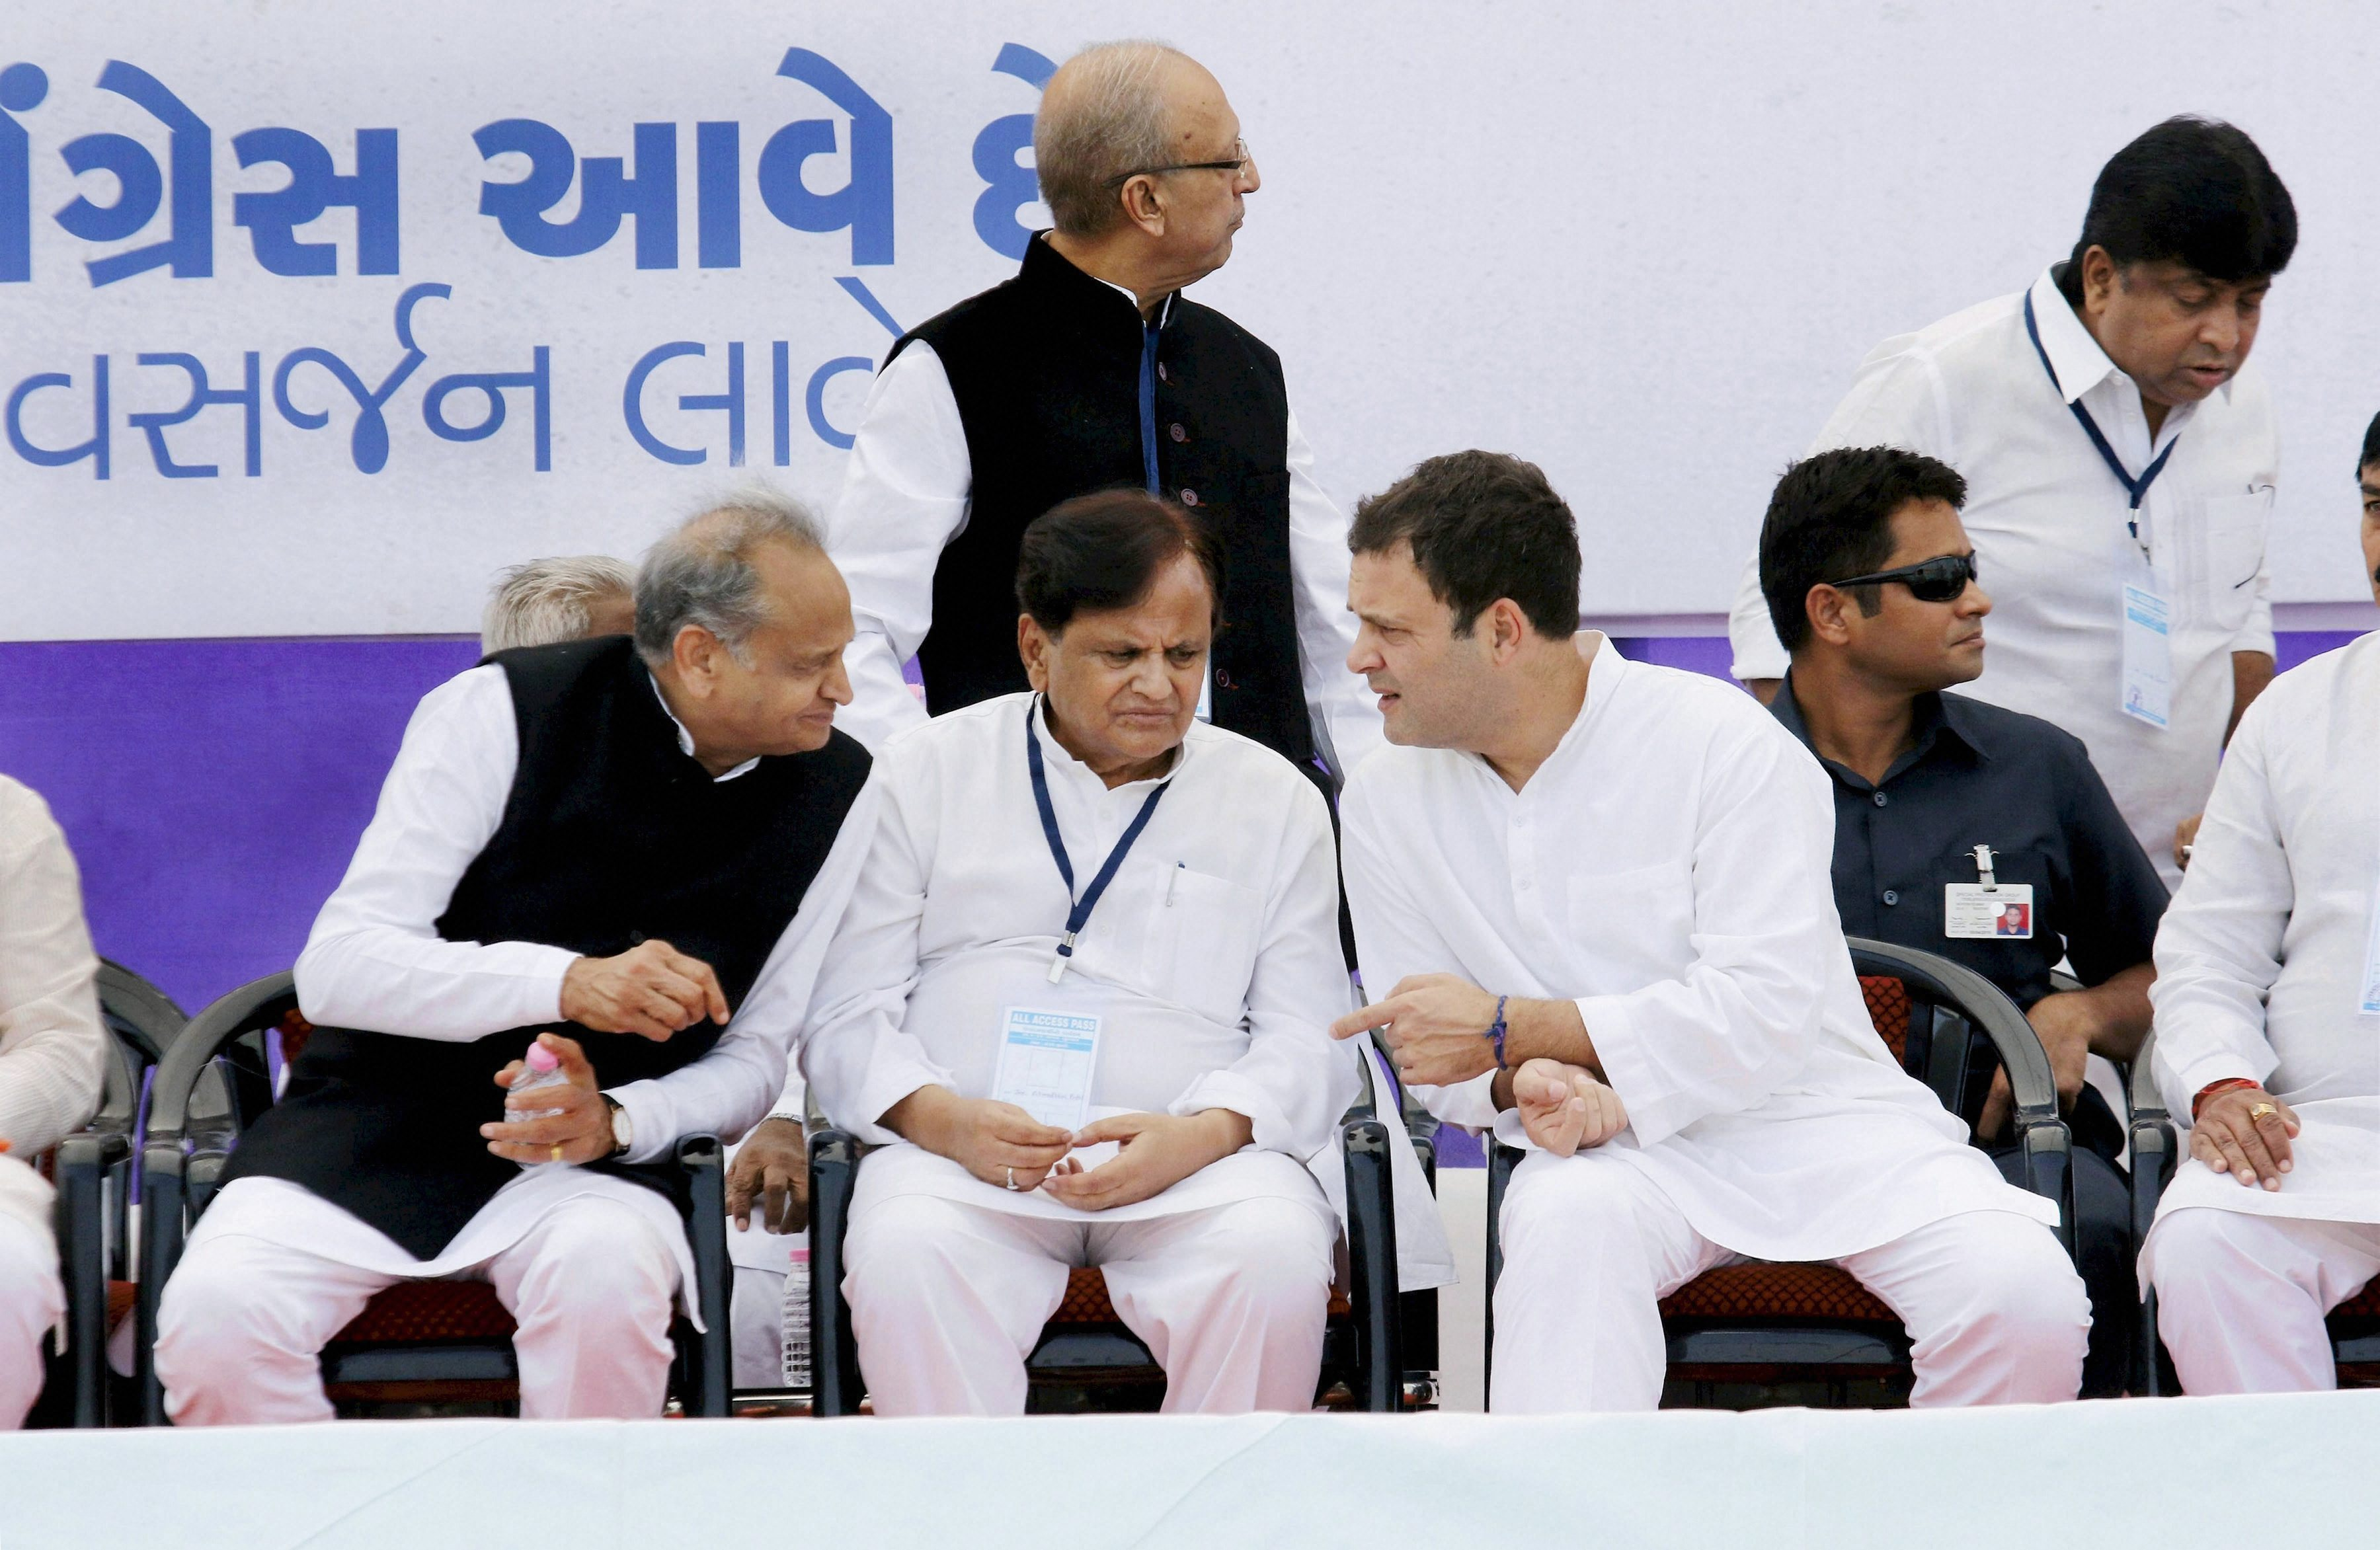 Bharuch: Congress vice-president Rahul Gandhi with senior leaders Ahmed Patel and Ashok Gehlot during a public meeting in Bharuch on Wednesday. PTI Photo (PTI11_1_2017_000044A)